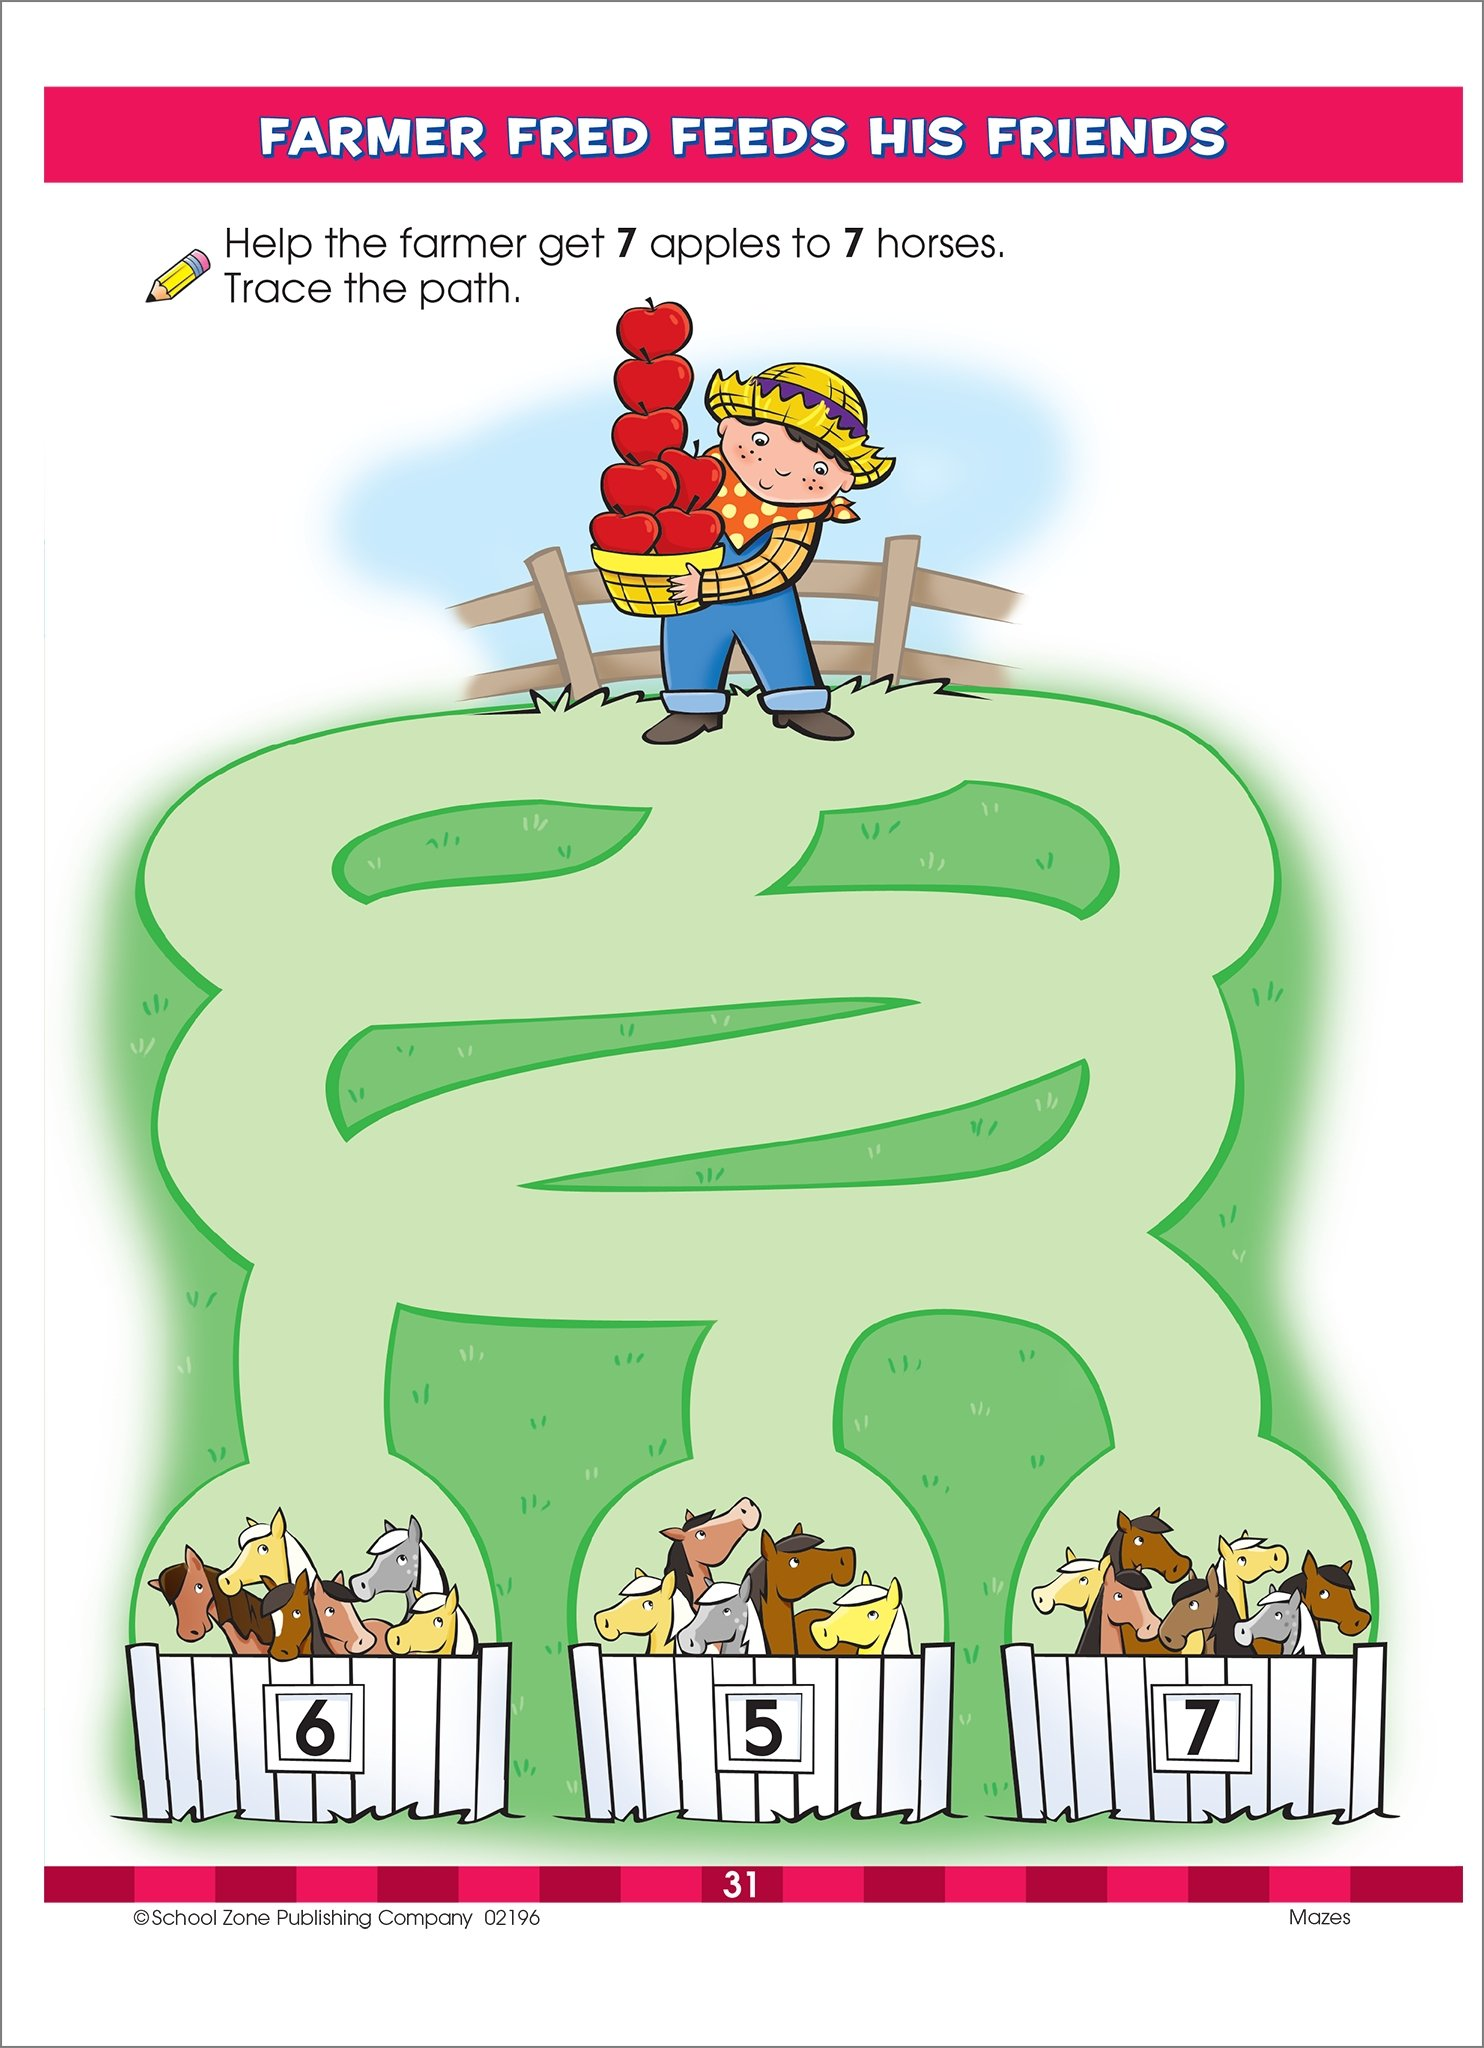 Mazes Preschool Workbook, Ages 3-5, clever scenes, playful problem ...